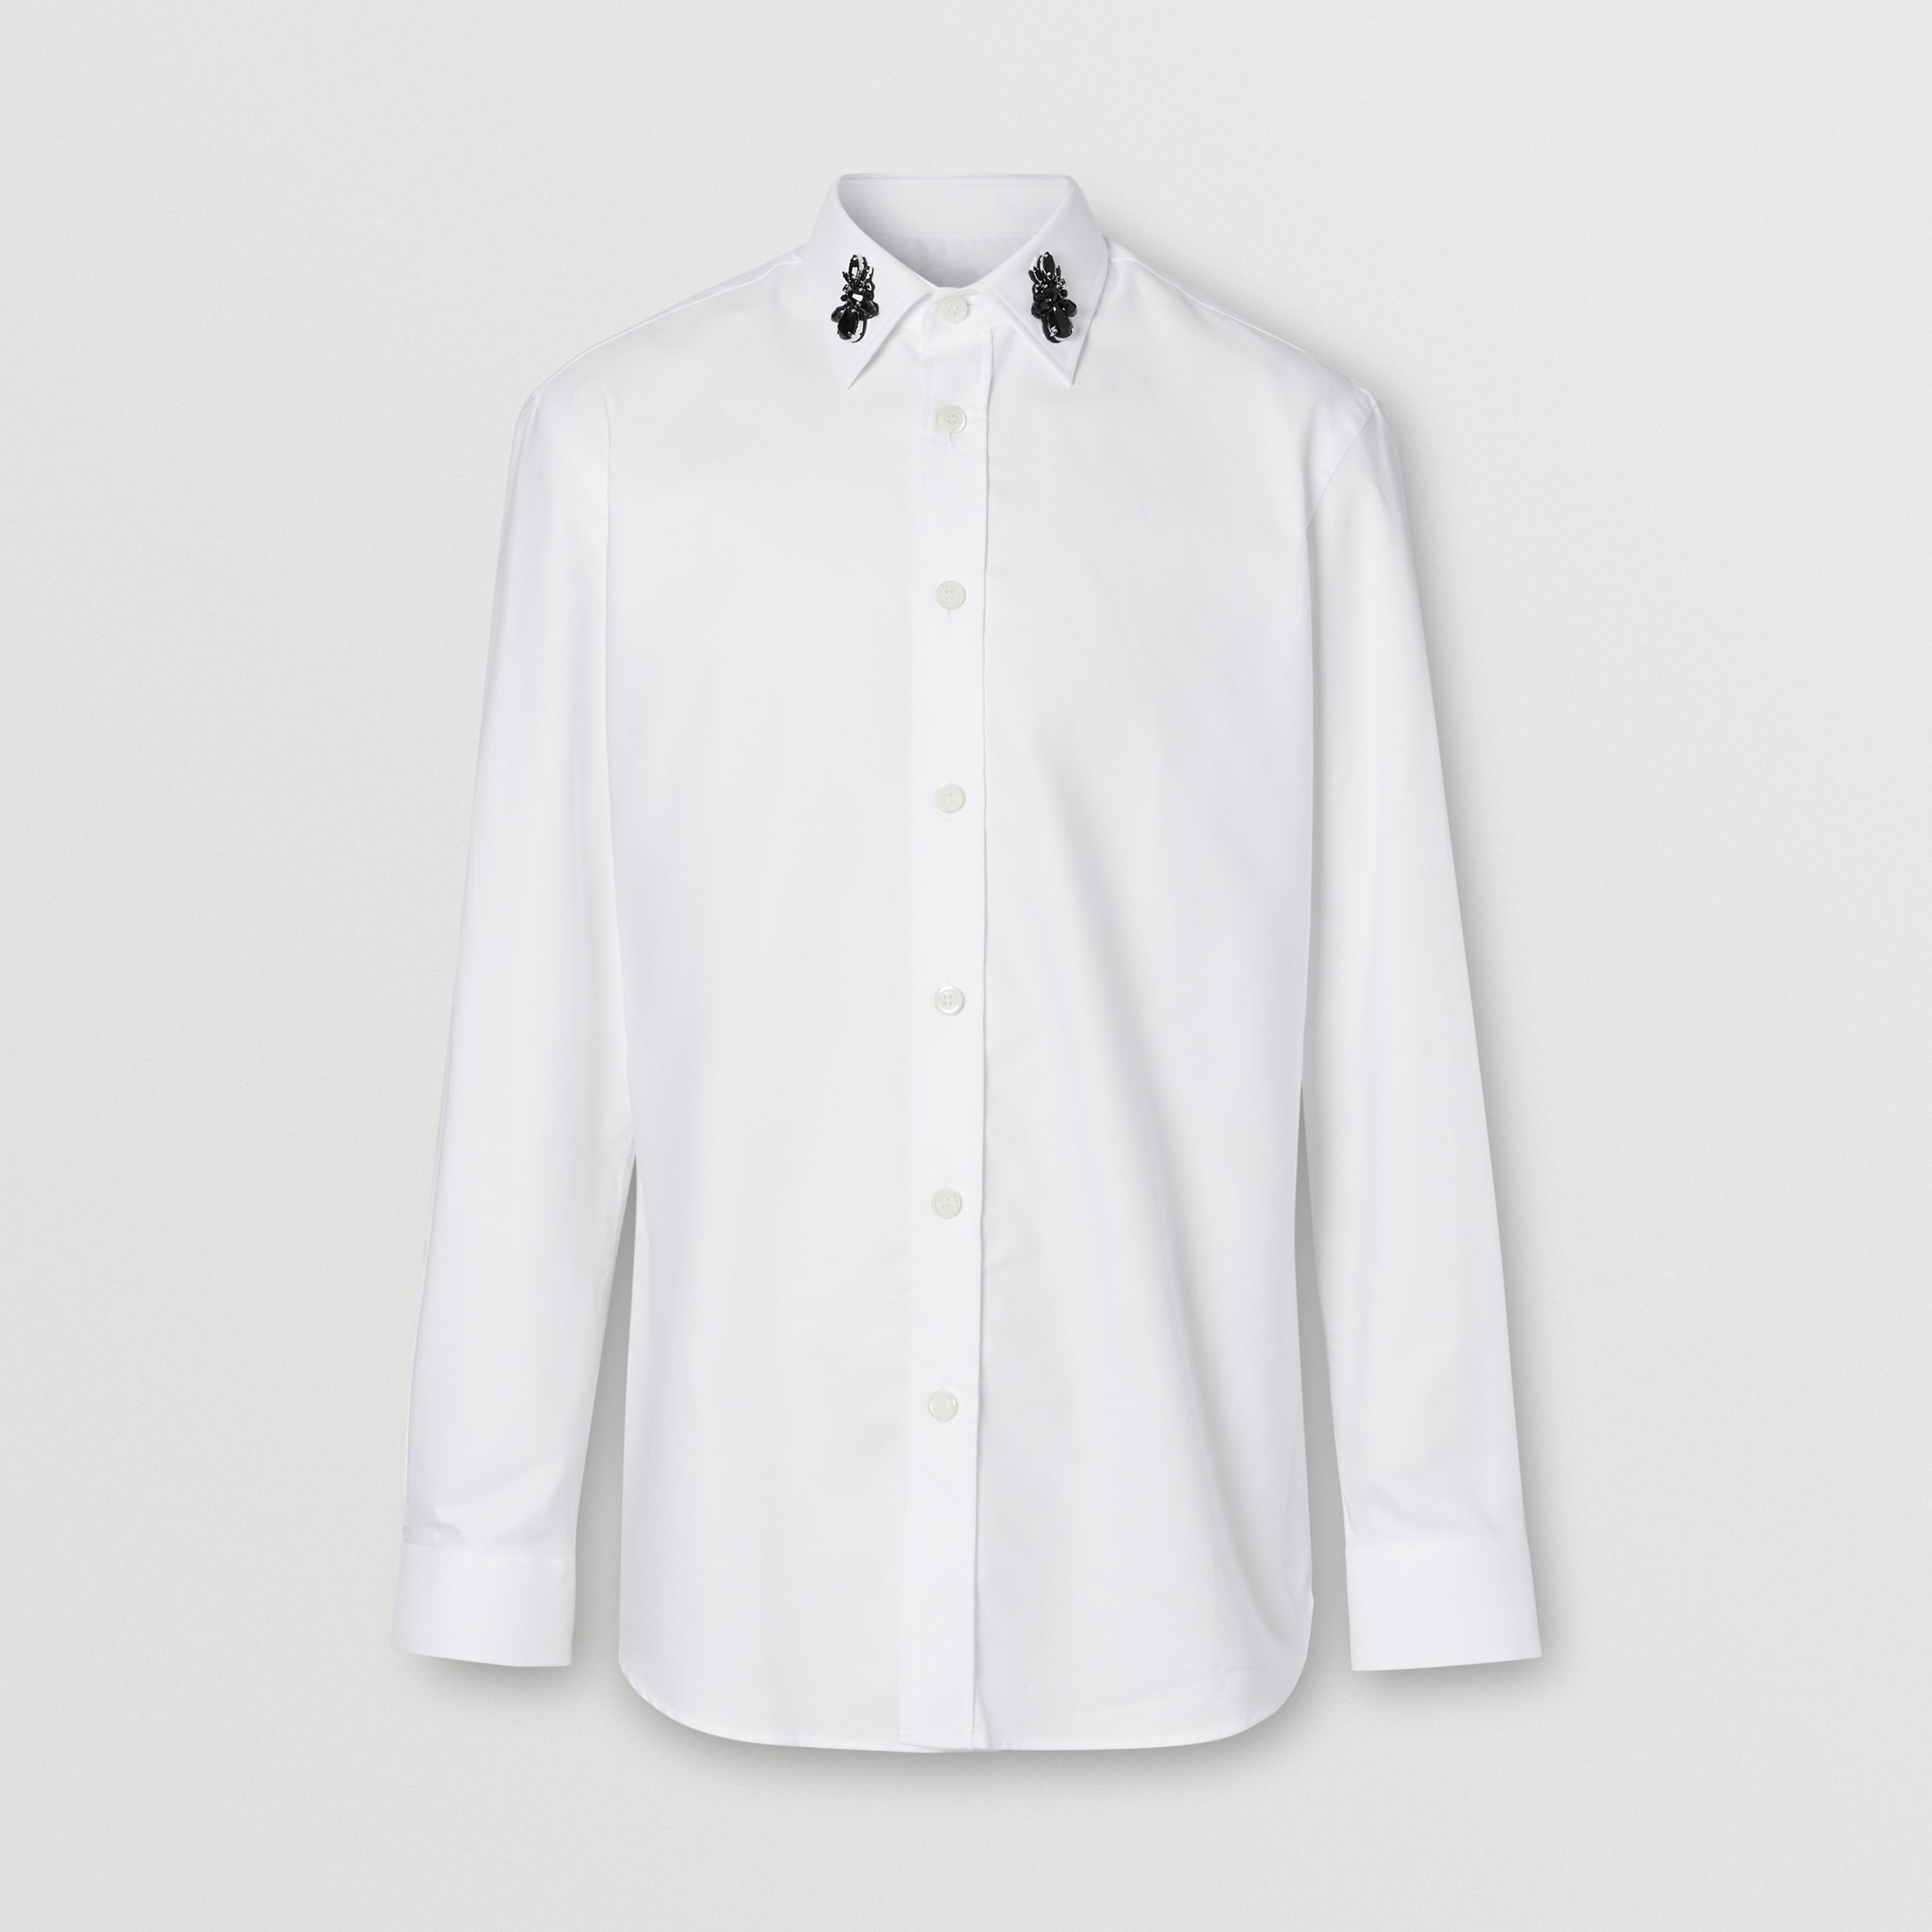 Classic Fit Crystal Detail Cotton Oxford Dress Shirt in White - Men | Burberry Hong Kong S.A.R. - 4